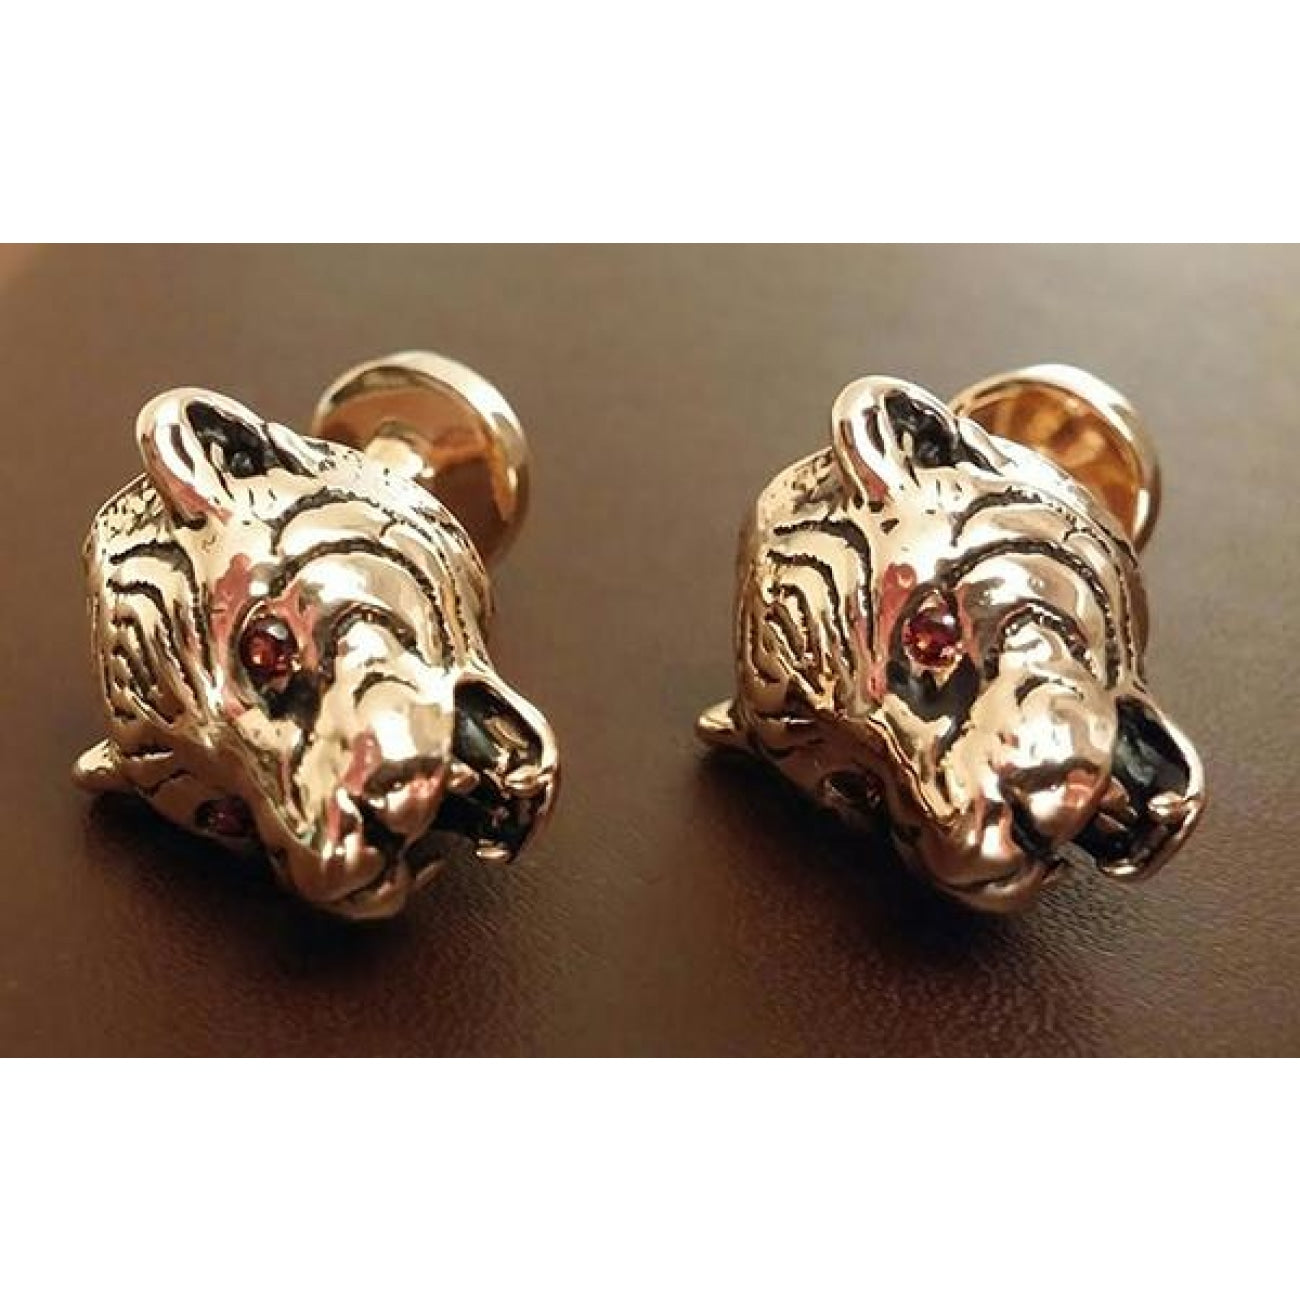 Manfredi Jewels Accessories - Tiger with garnets plated rose | Manfredi Jewels